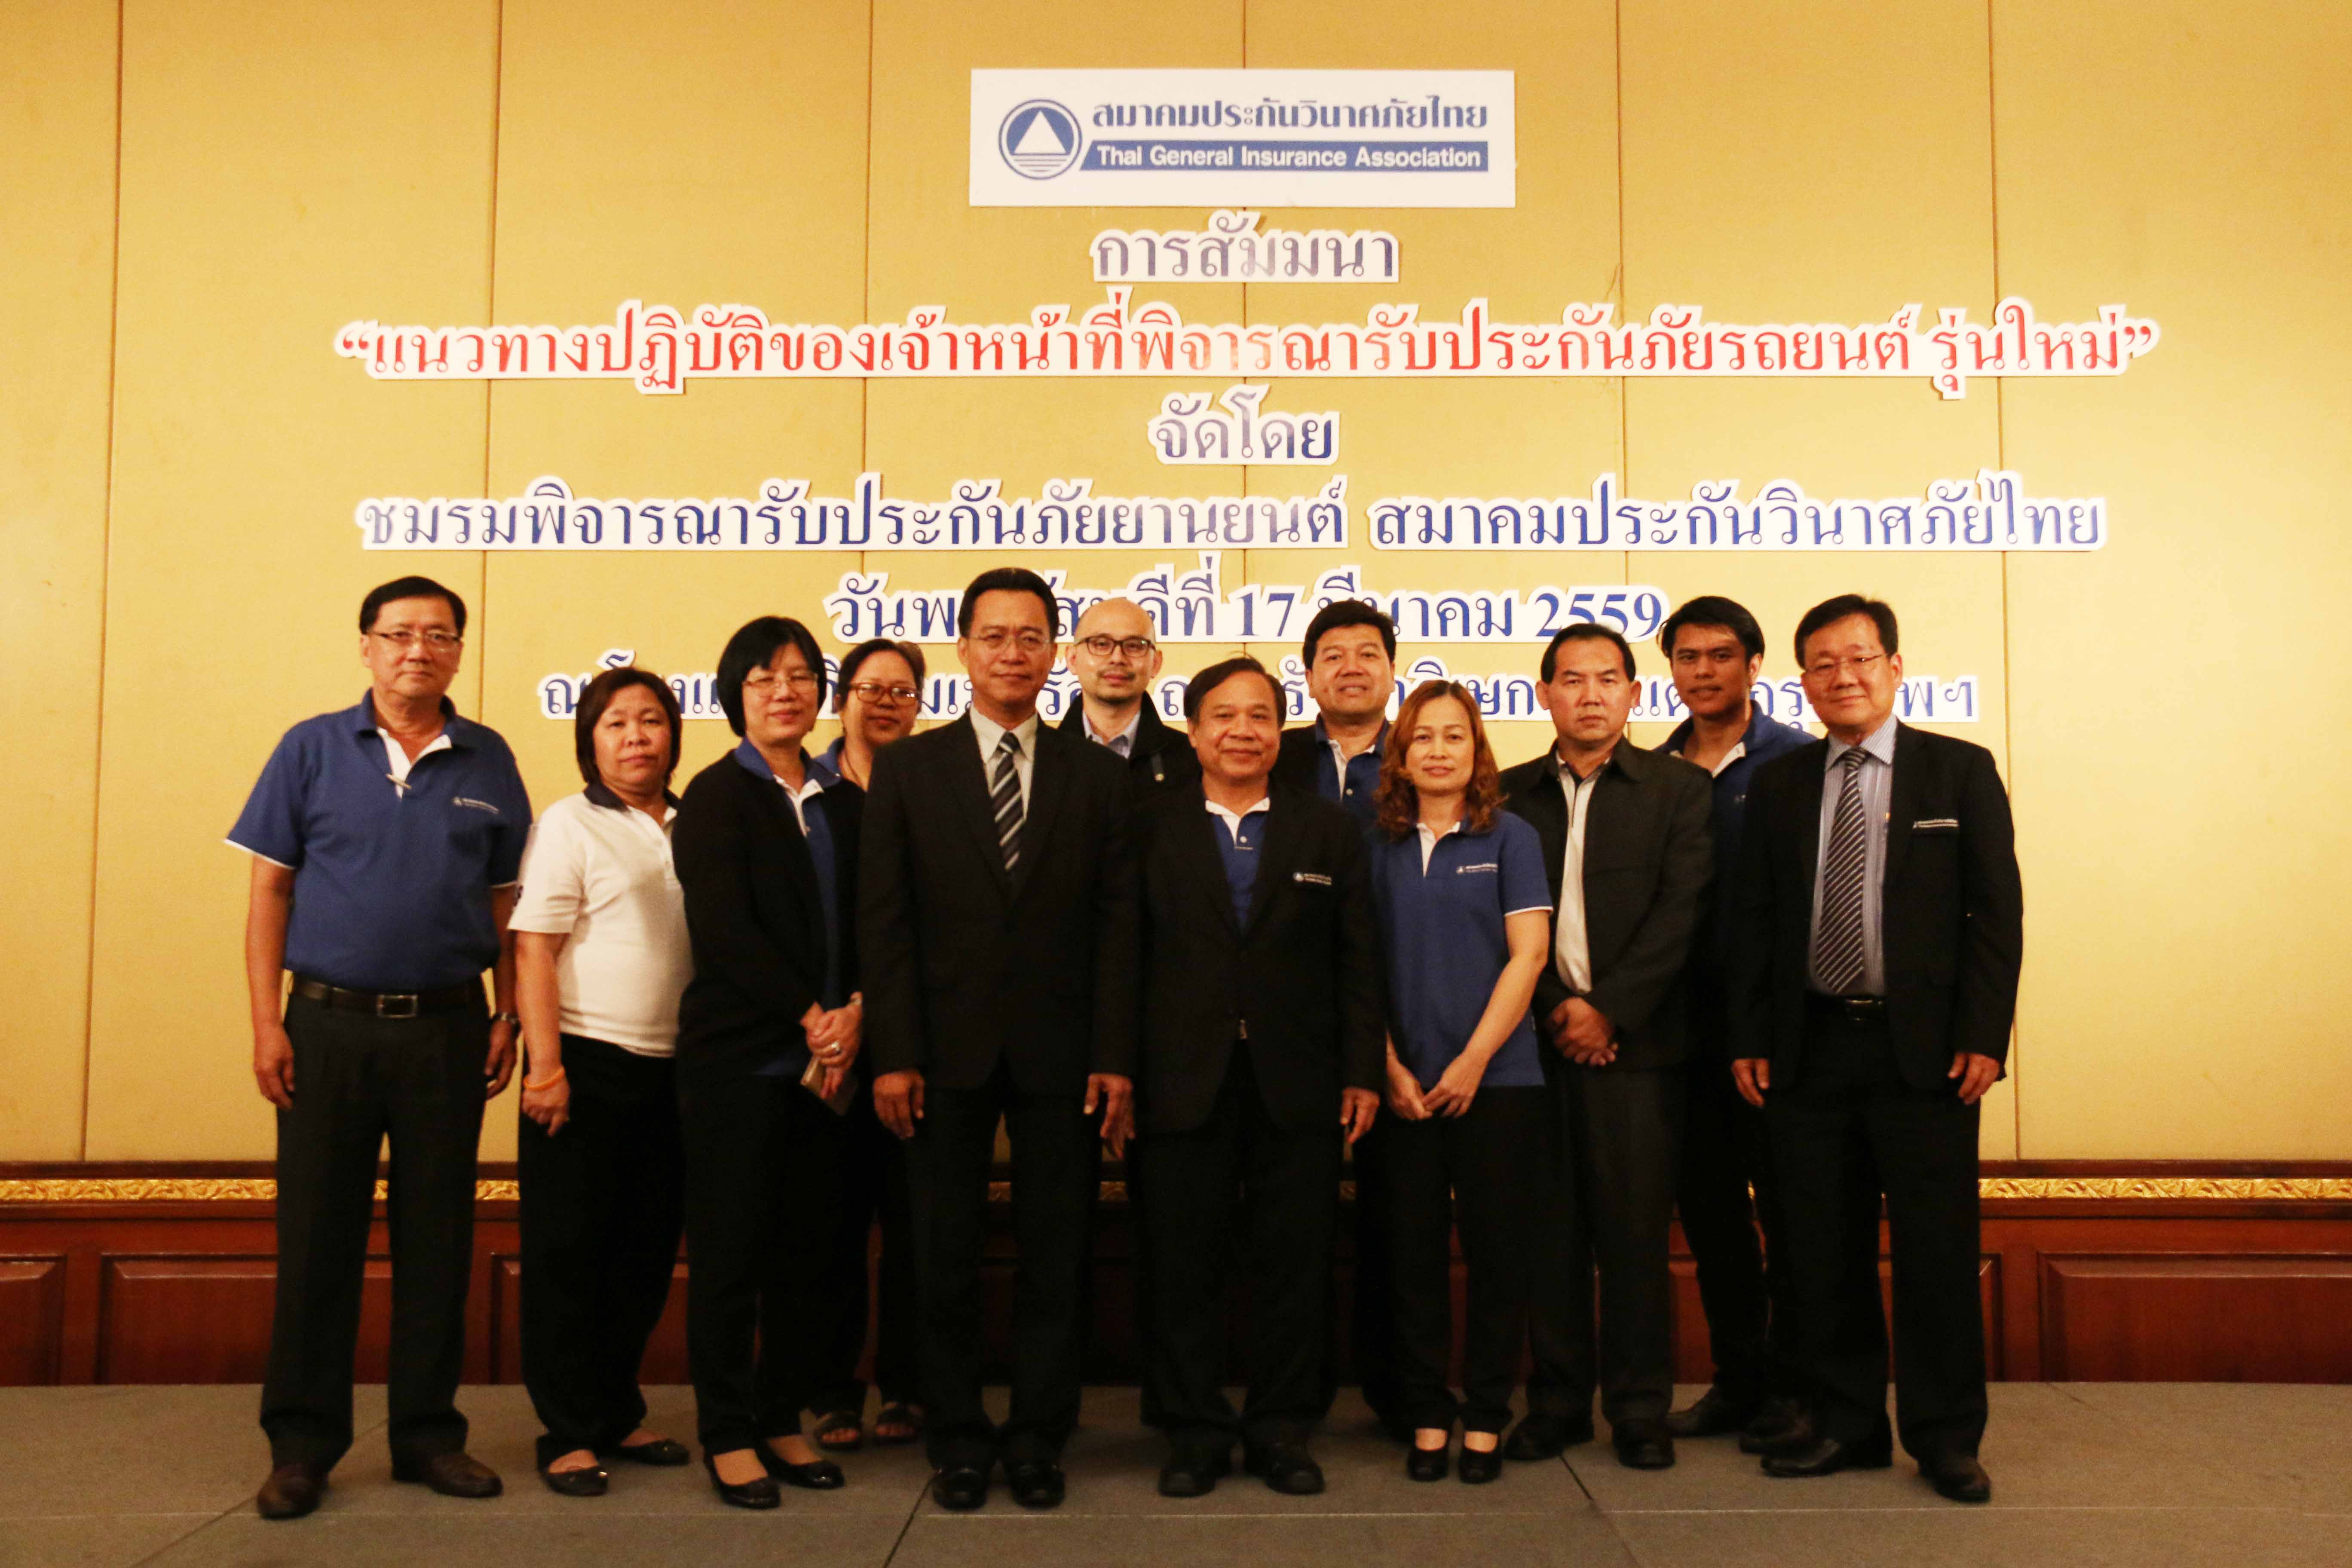 thailand general insurance